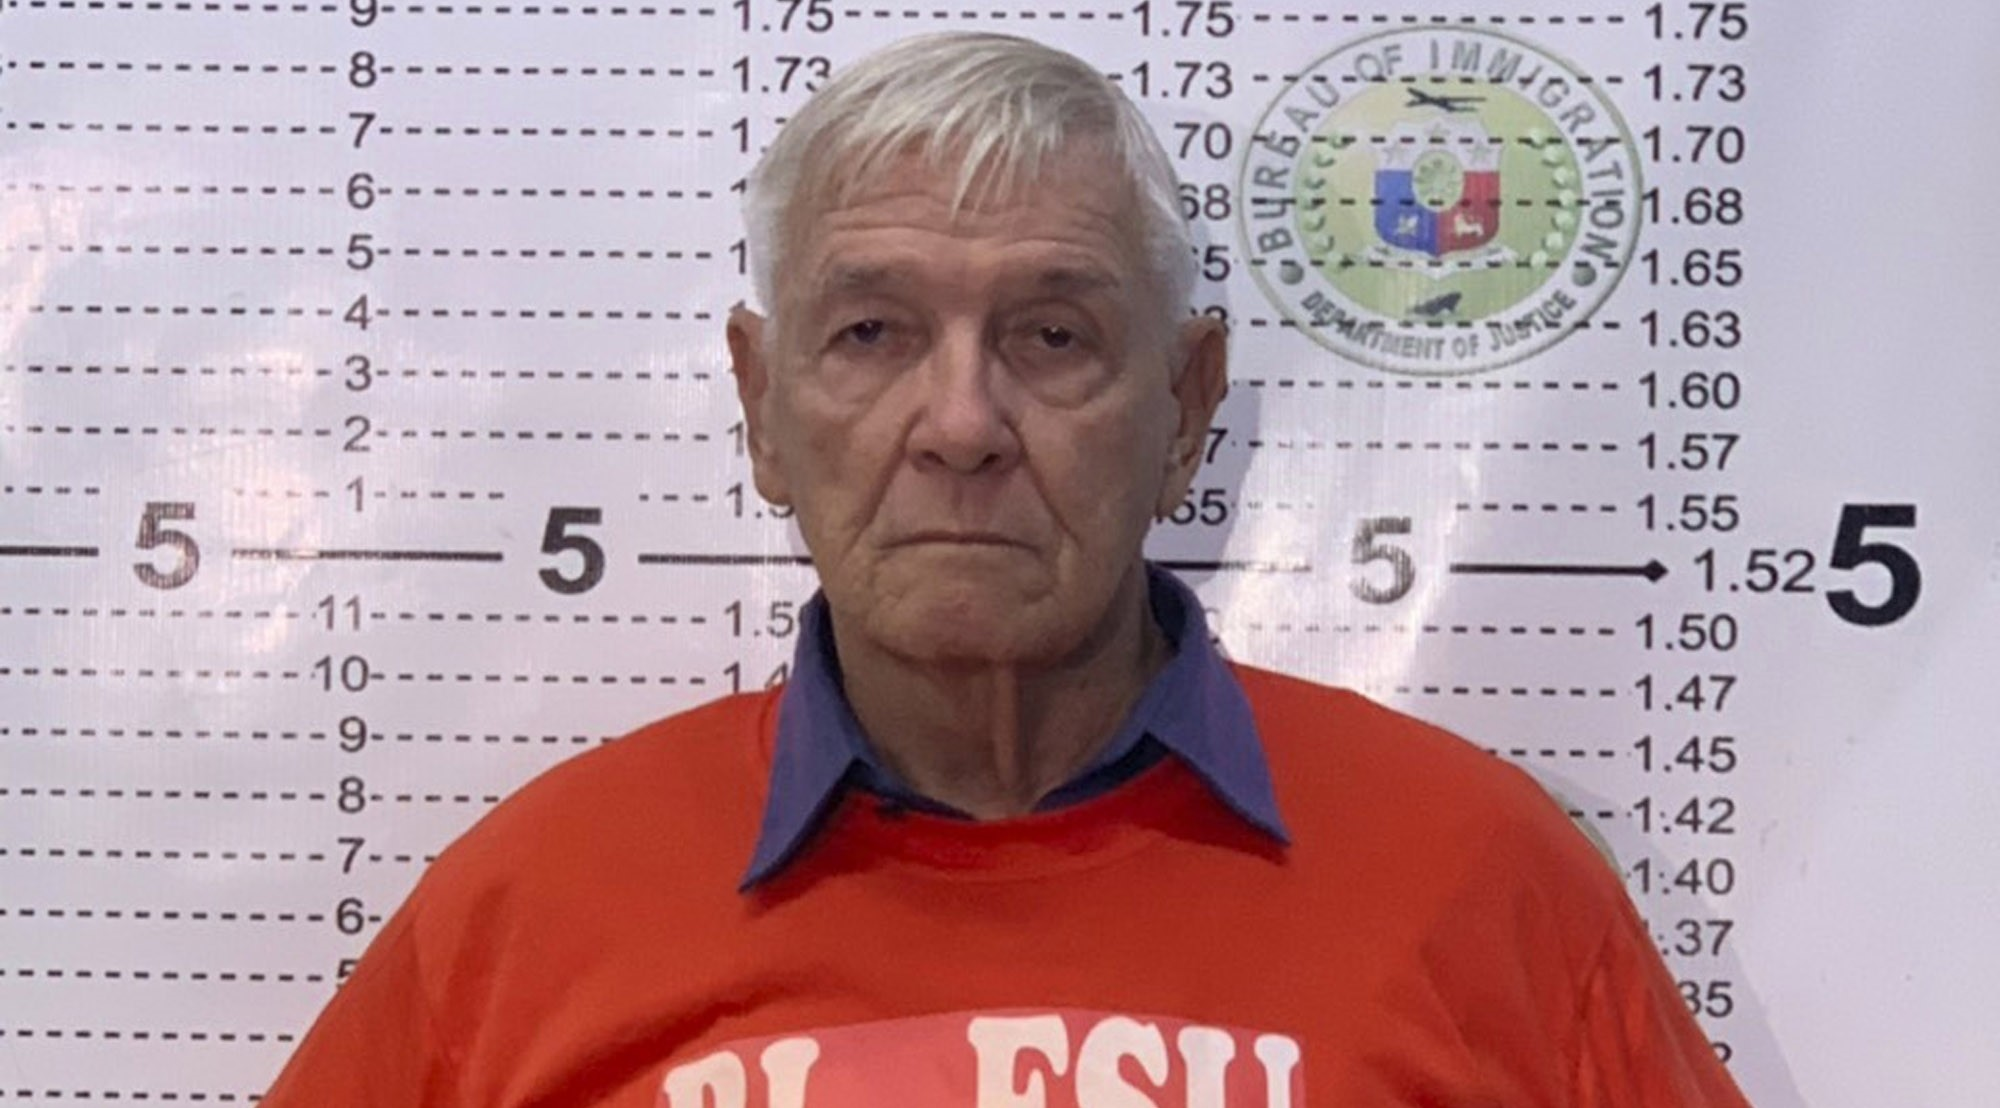 In this Dec. 5, 2018 photo released by the Bureau of Immigration Public Information Office, American Roman Catholic priest Rev. Kenneth Bernard Hendricks poses for his mugshot at the Bureau of Immigration in Manila. (Bureau of Immigration PIO via AP)